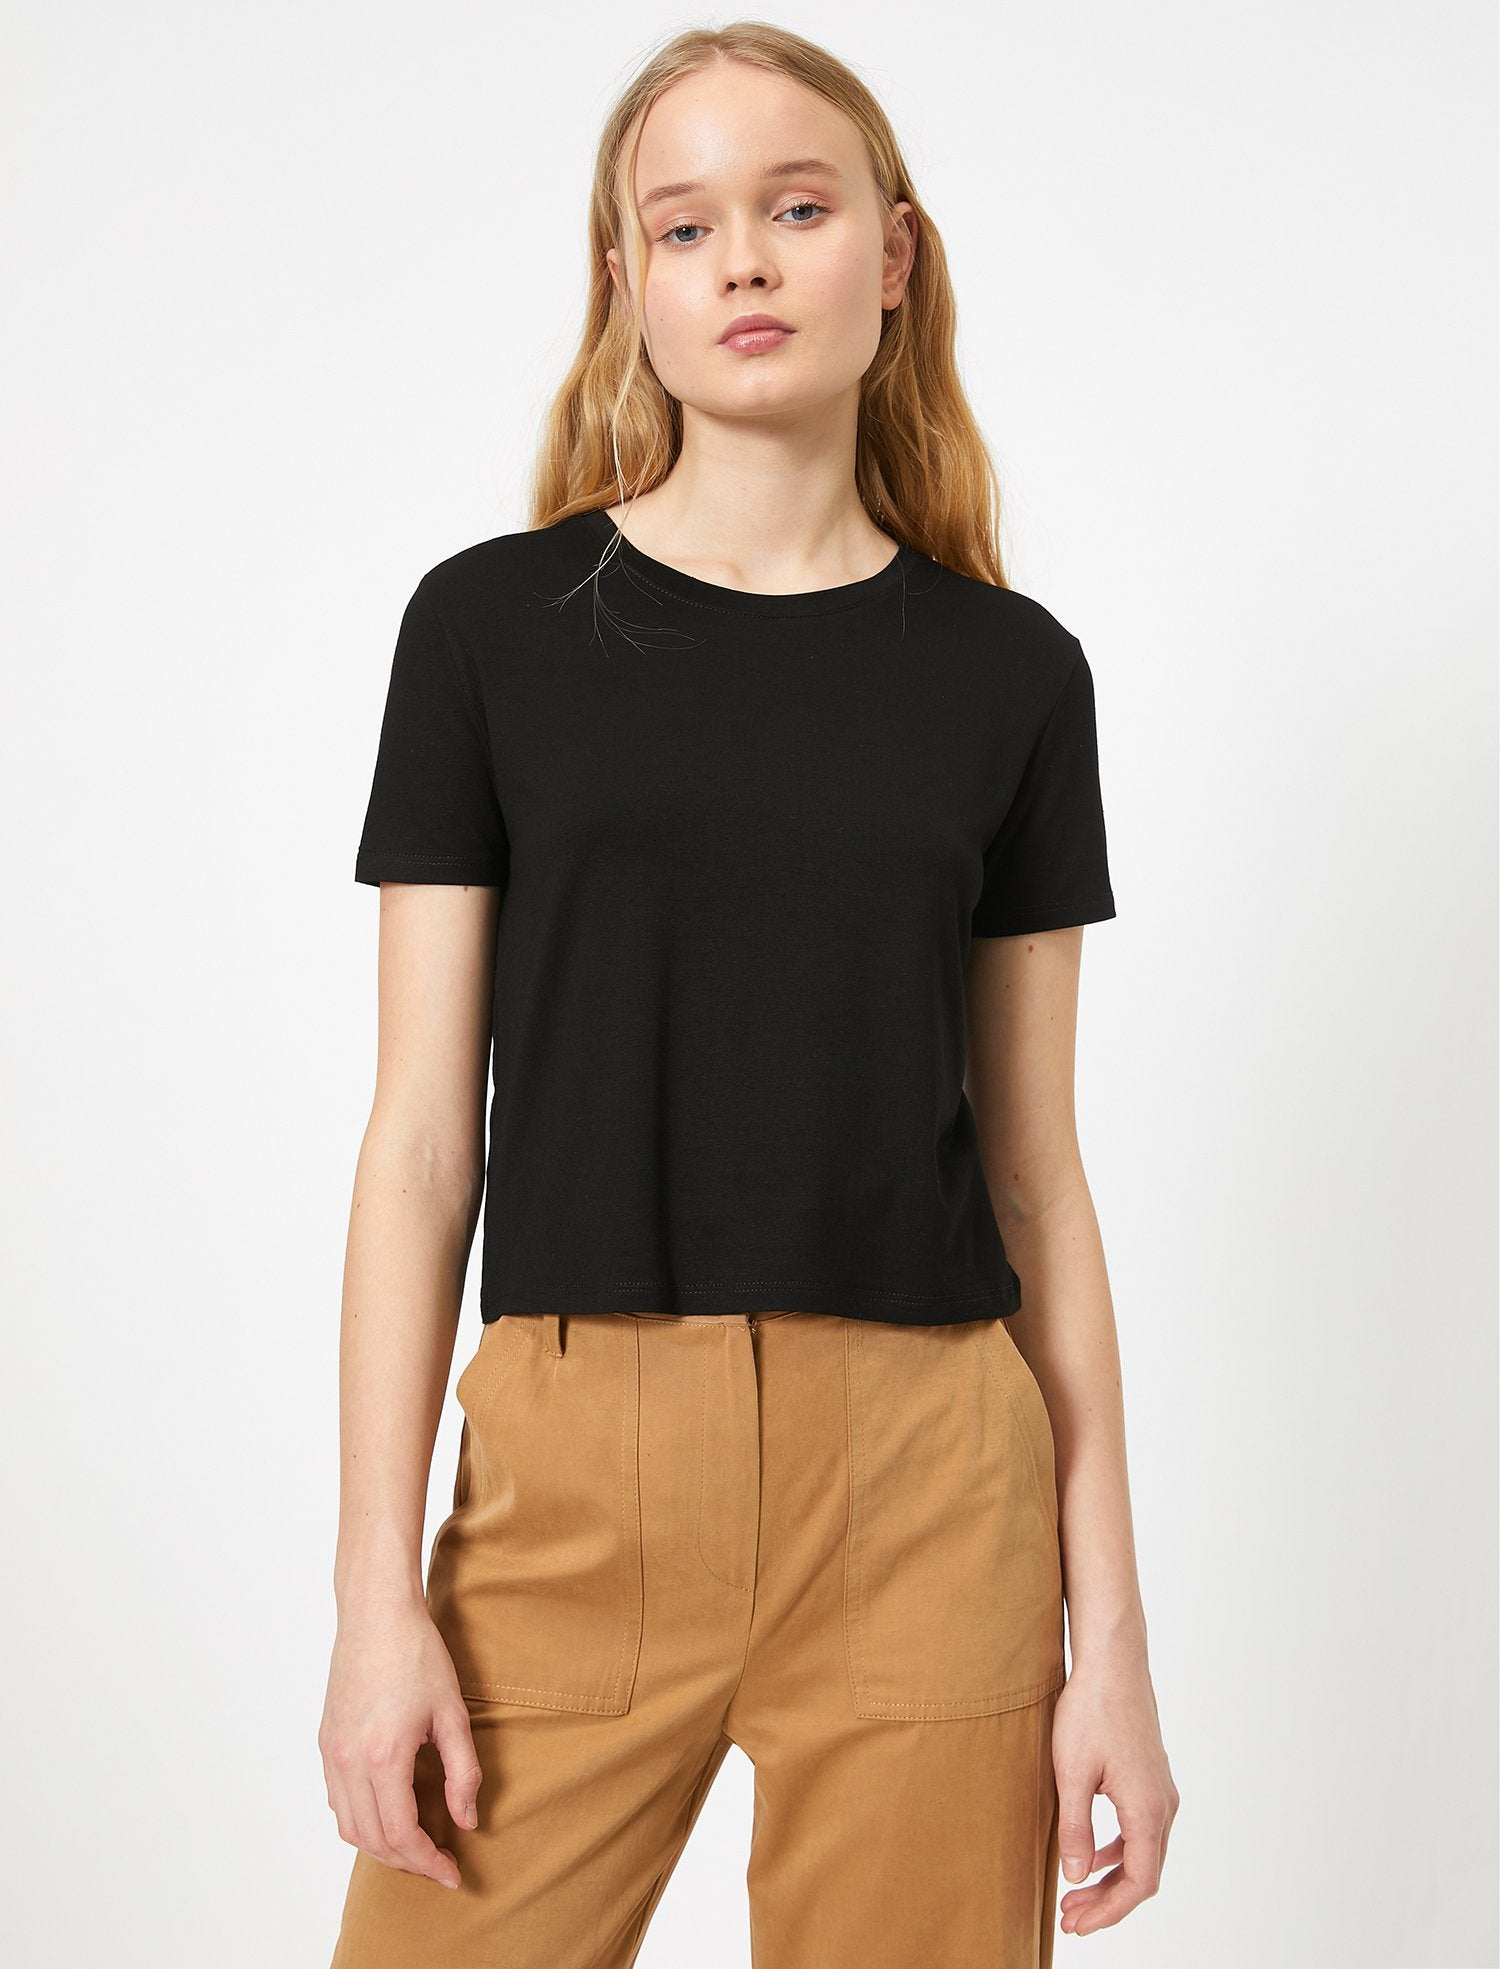 Short Basic Tshirt in Black